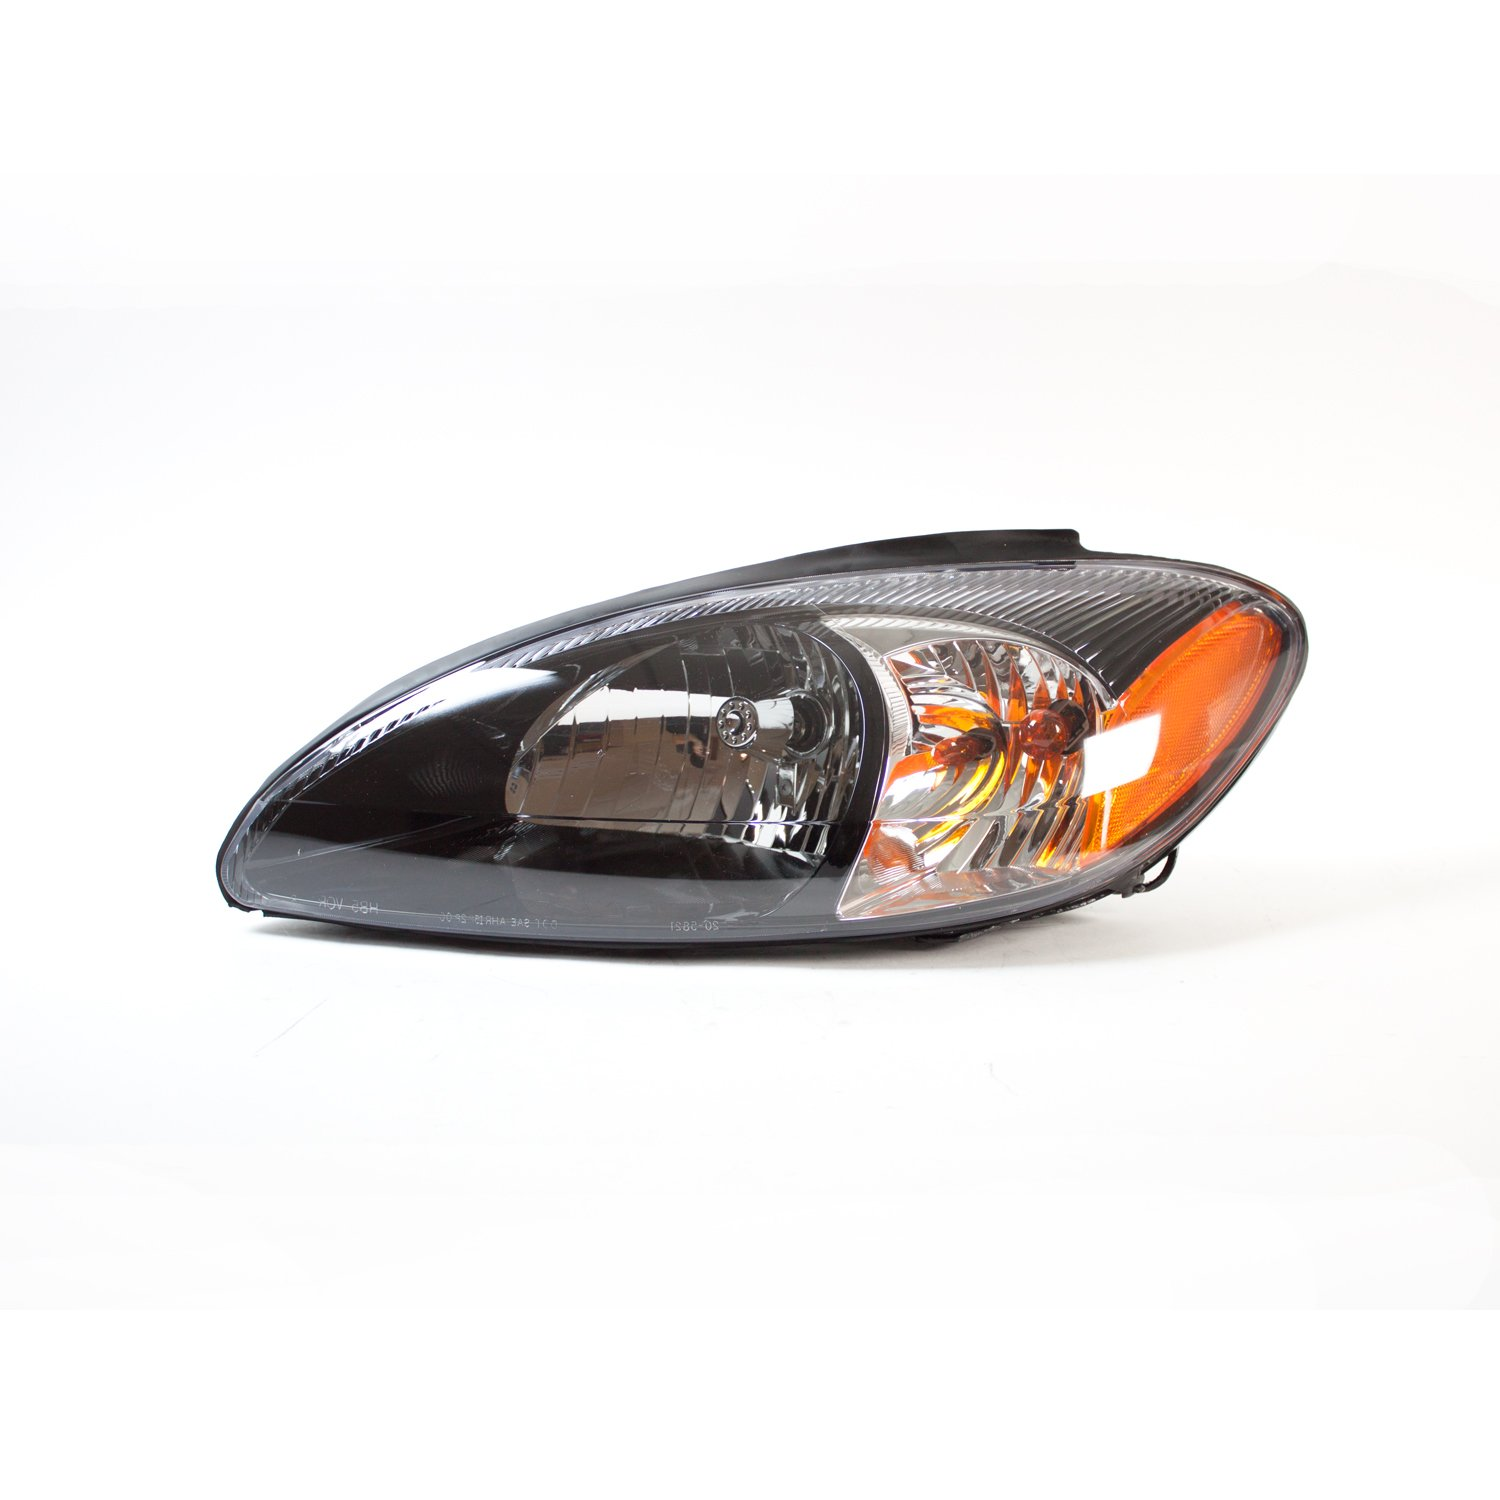 TYC 20-5822-90-9 Ford Taurus CAPA Certified Replacement Left Head Lamp 205822909TYC